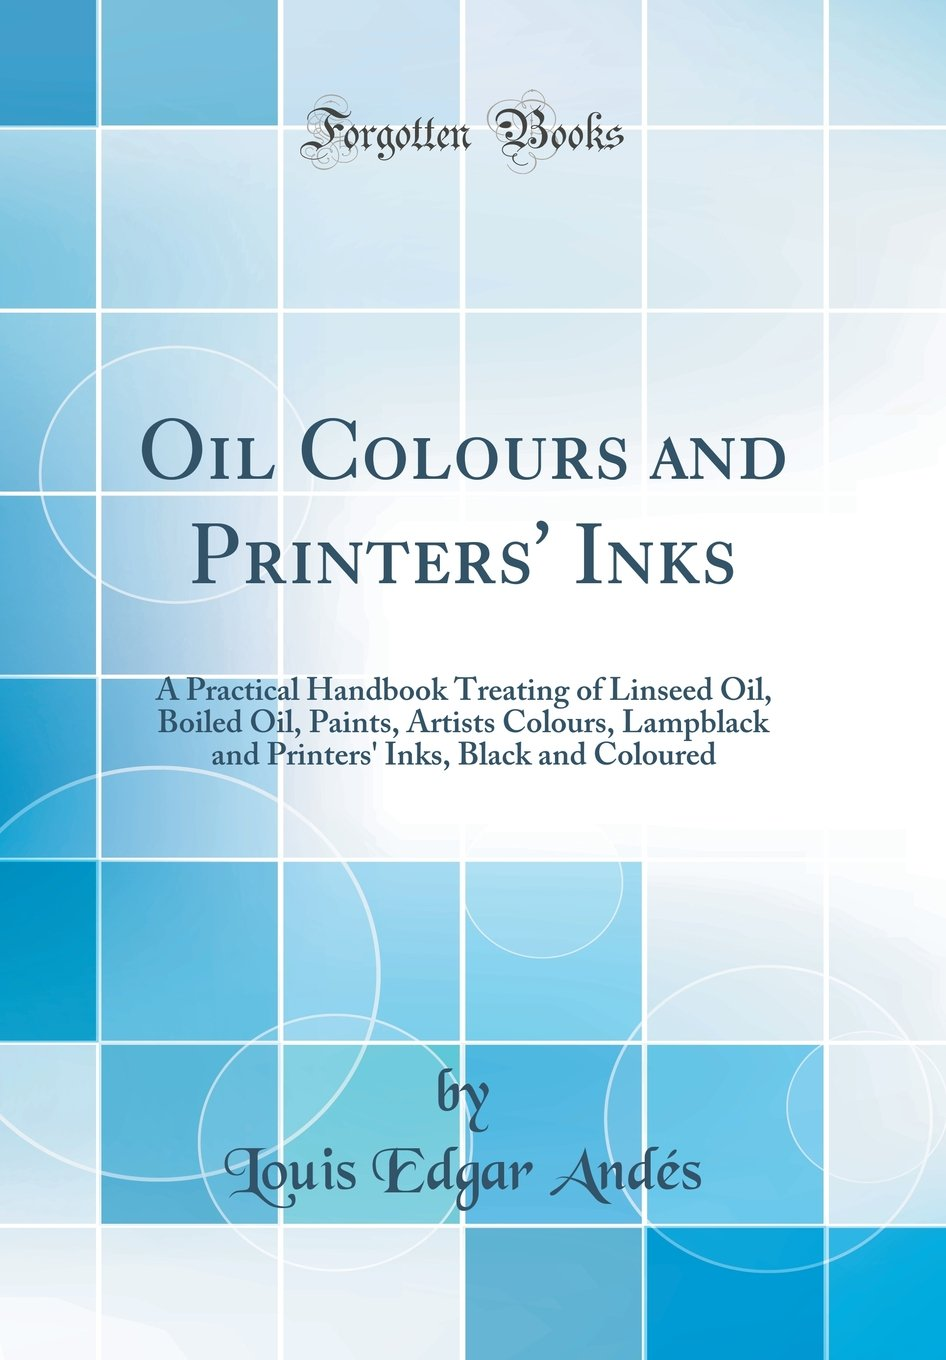 Read Online Oil Colours and Printers' Inks: A Practical Handbook Treating of Linseed Oil, Boiled Oil, Paints, Artists Colours, Lampblack and Printers' Inks, Black and Coloured (Classic Reprint) pdf